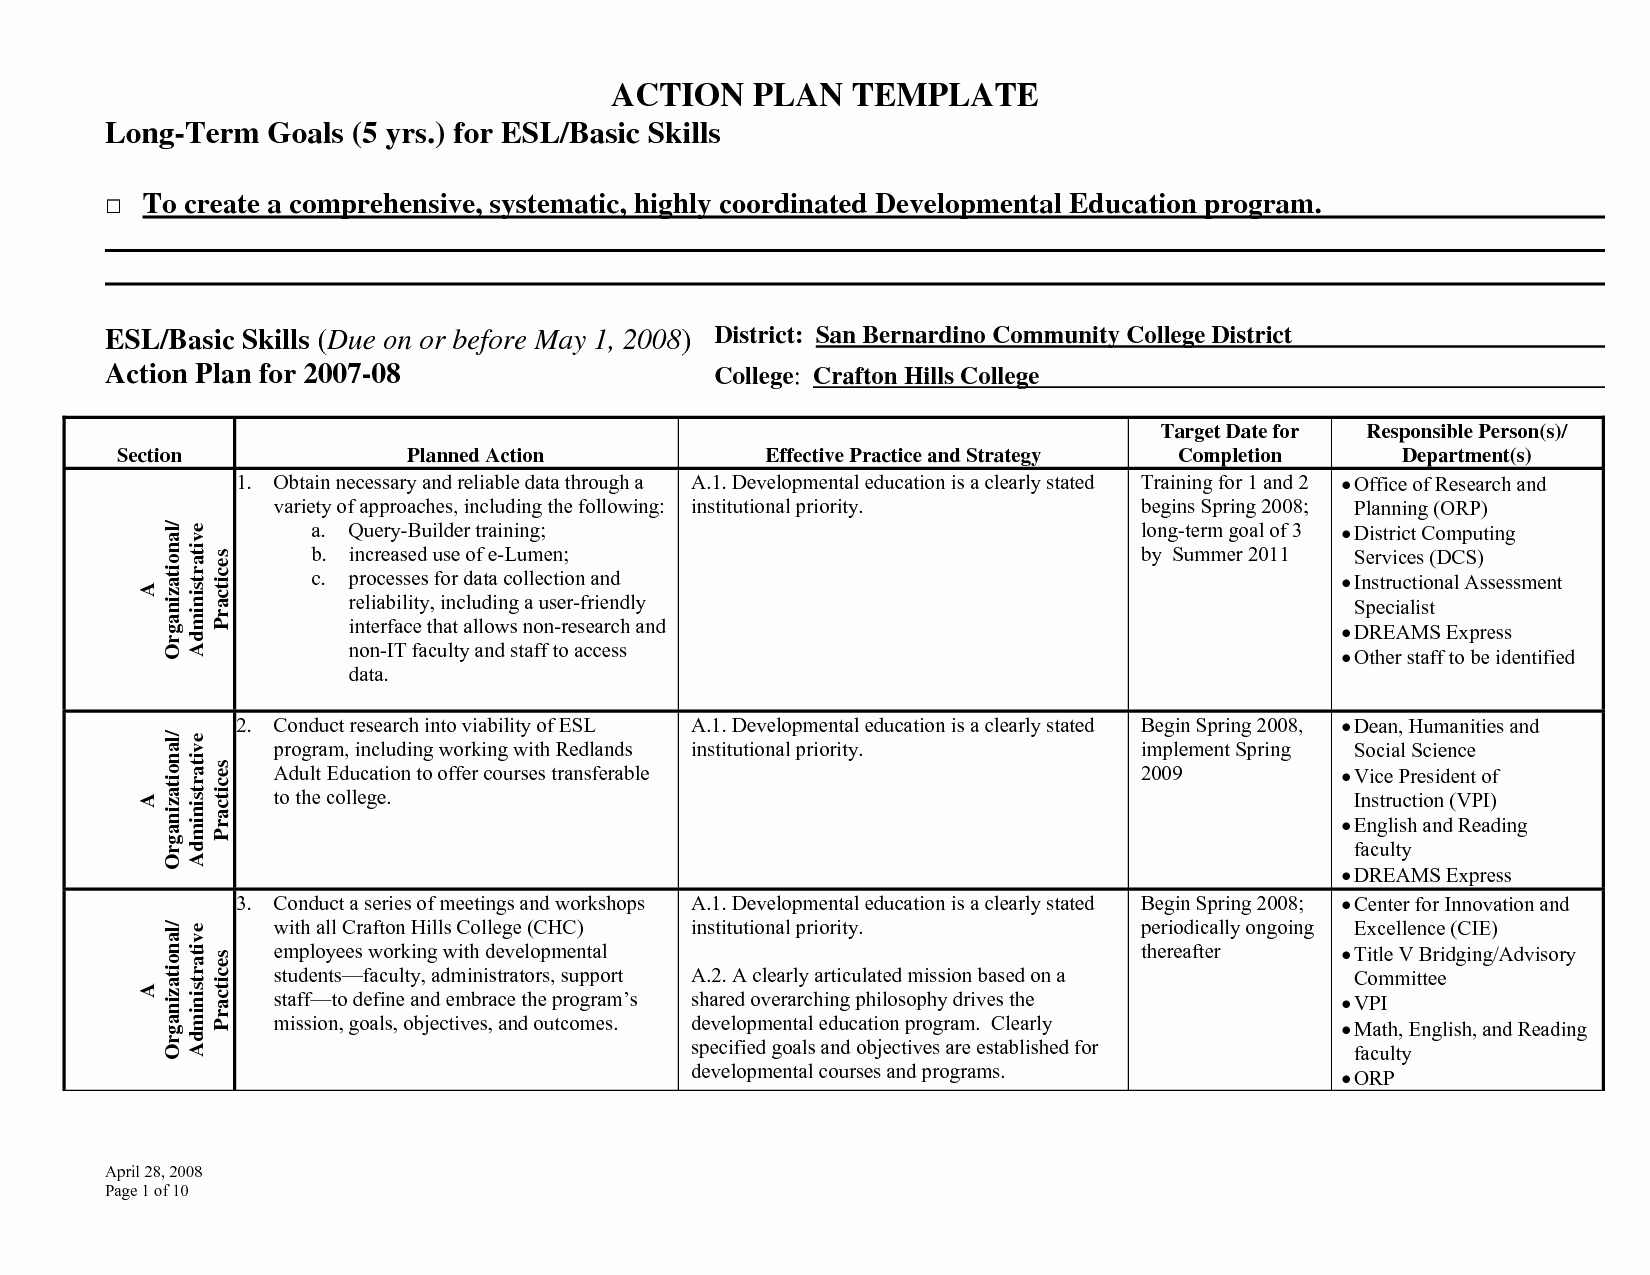 Long Term Plan Template Elegant Impressive Business Action Plan Template for Long Term